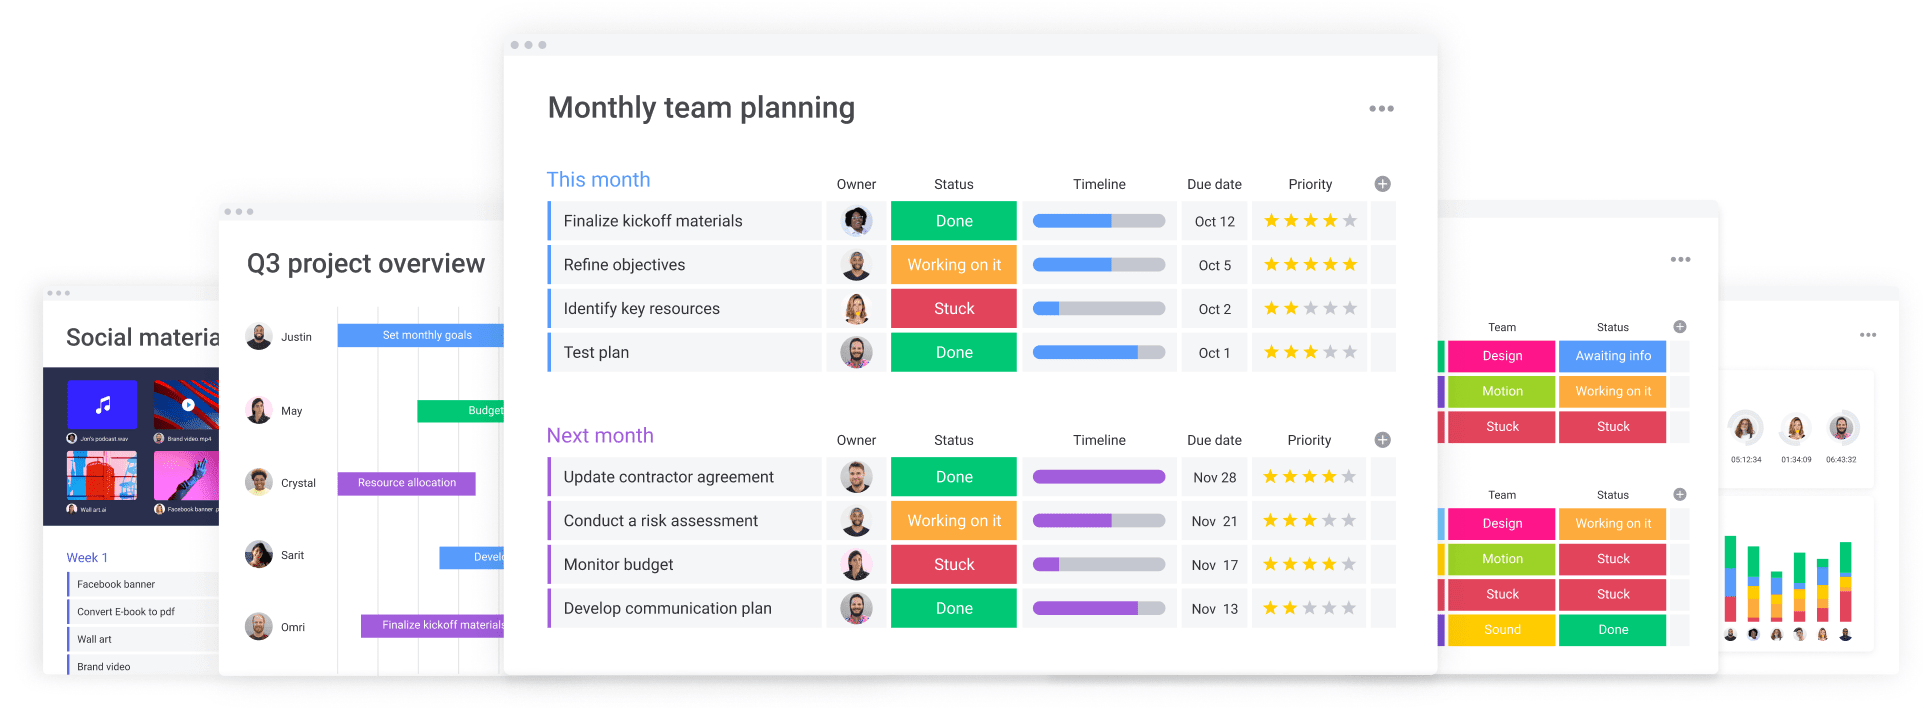 monday.com's platform allows users to host their entire workflow in one location